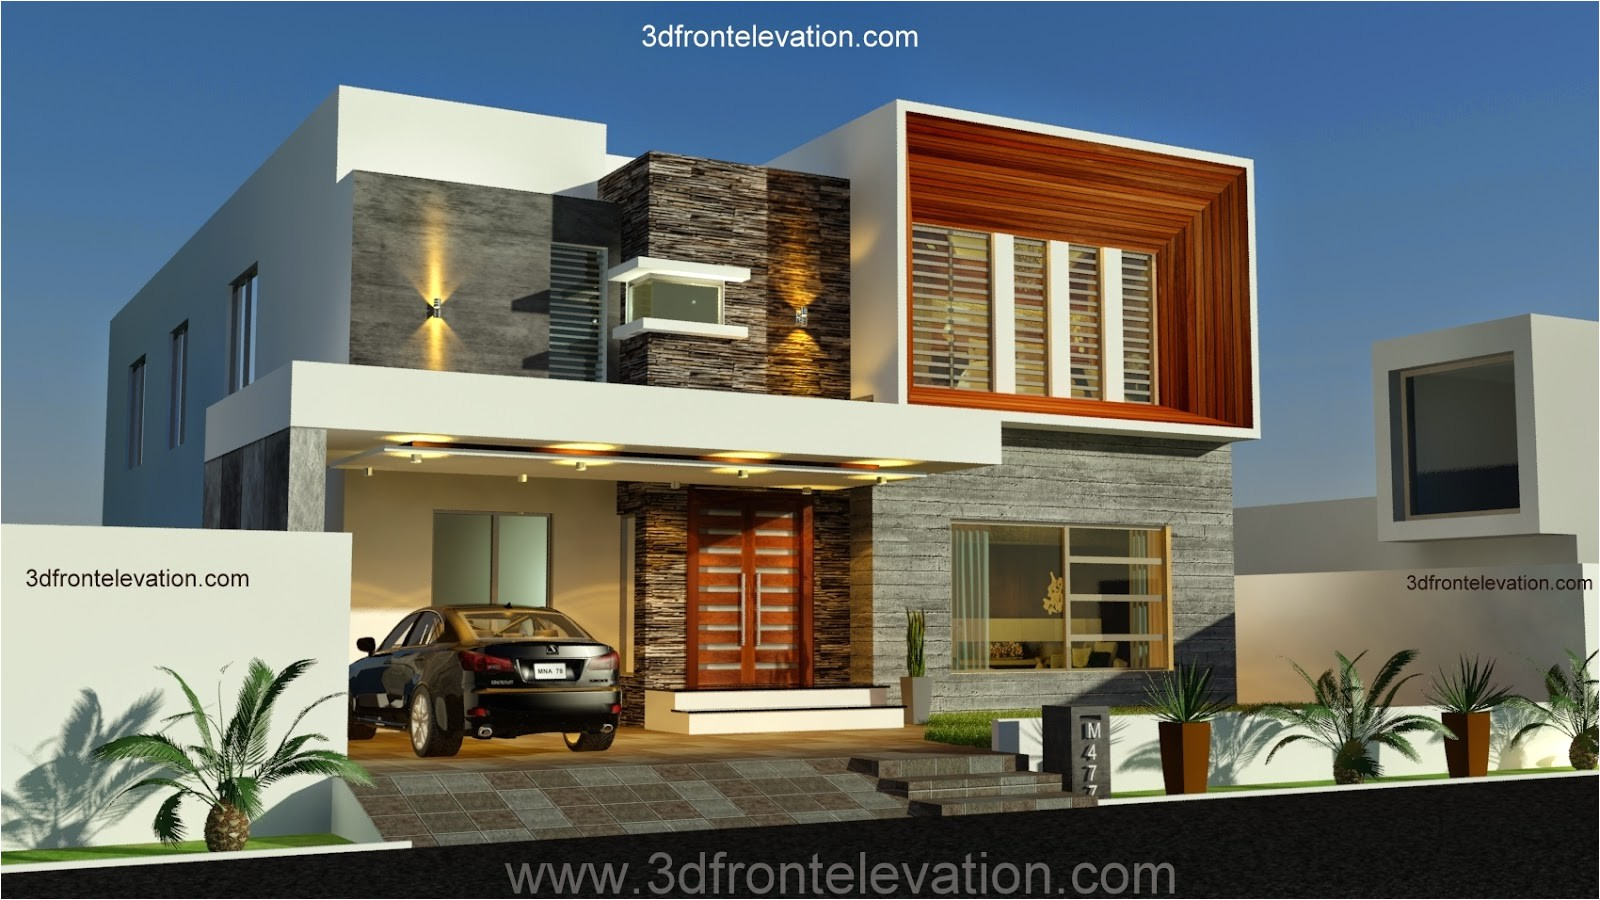 architectural plans of houses in pakistan